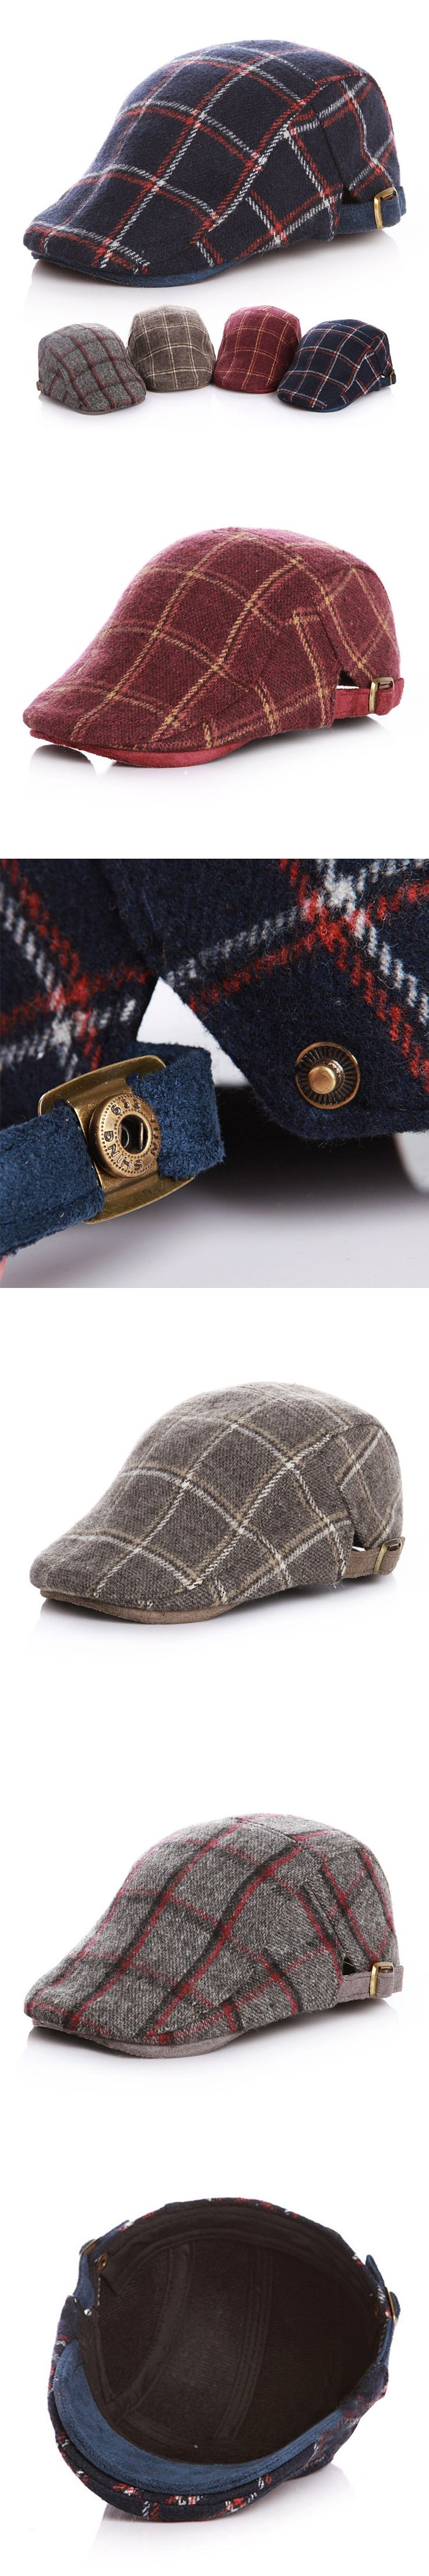 Classic Plaid Kids Beret Hat Cotton Adjustable Children Cap Autumn Winter Fashion Beret Hat For Boys Girls Sun Cap Boys Clothing